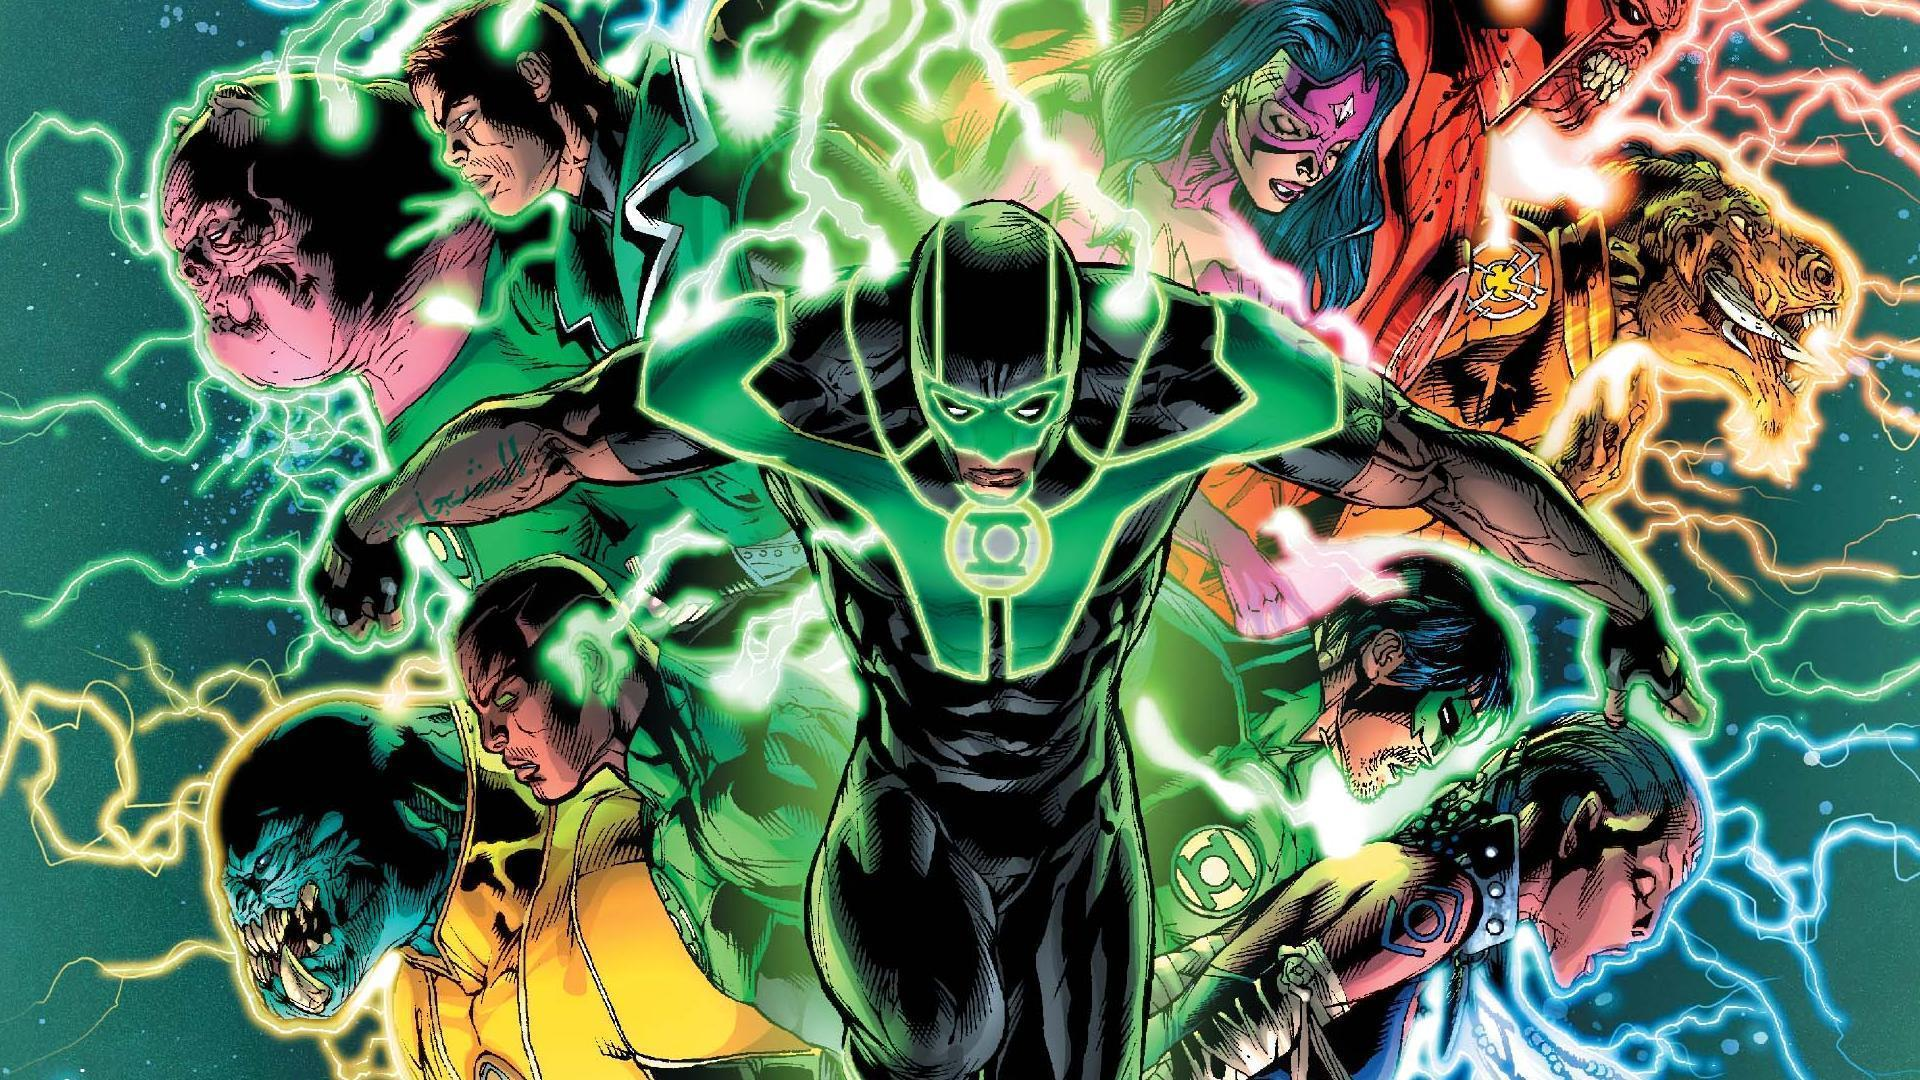 Green Lantern Computer Wallpapers, Desktop Backgrounds 1920x1080